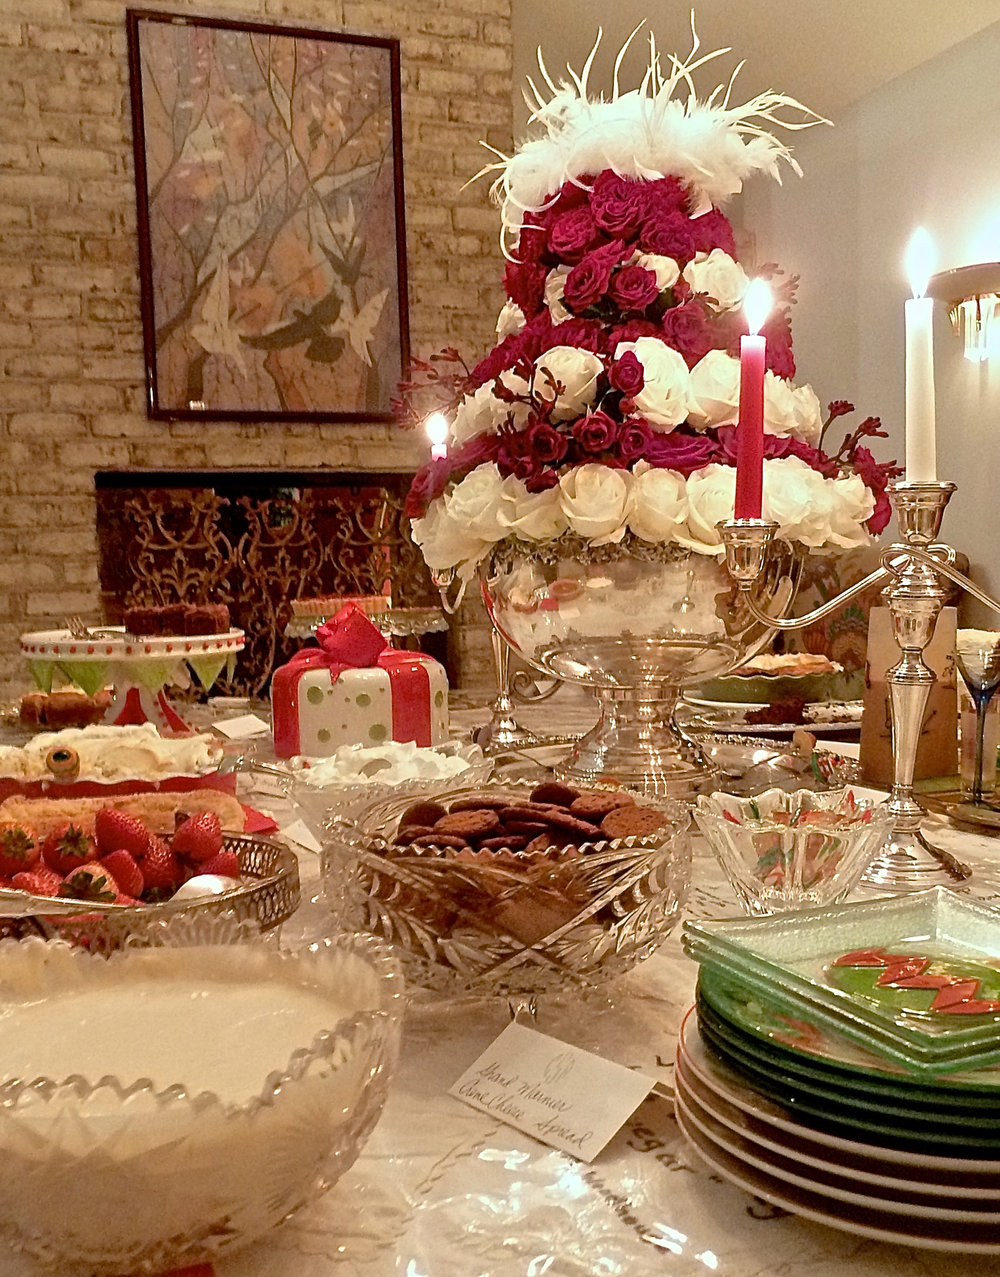 cindi_dessertparty_2013_spiritedtable_photo1.jpg